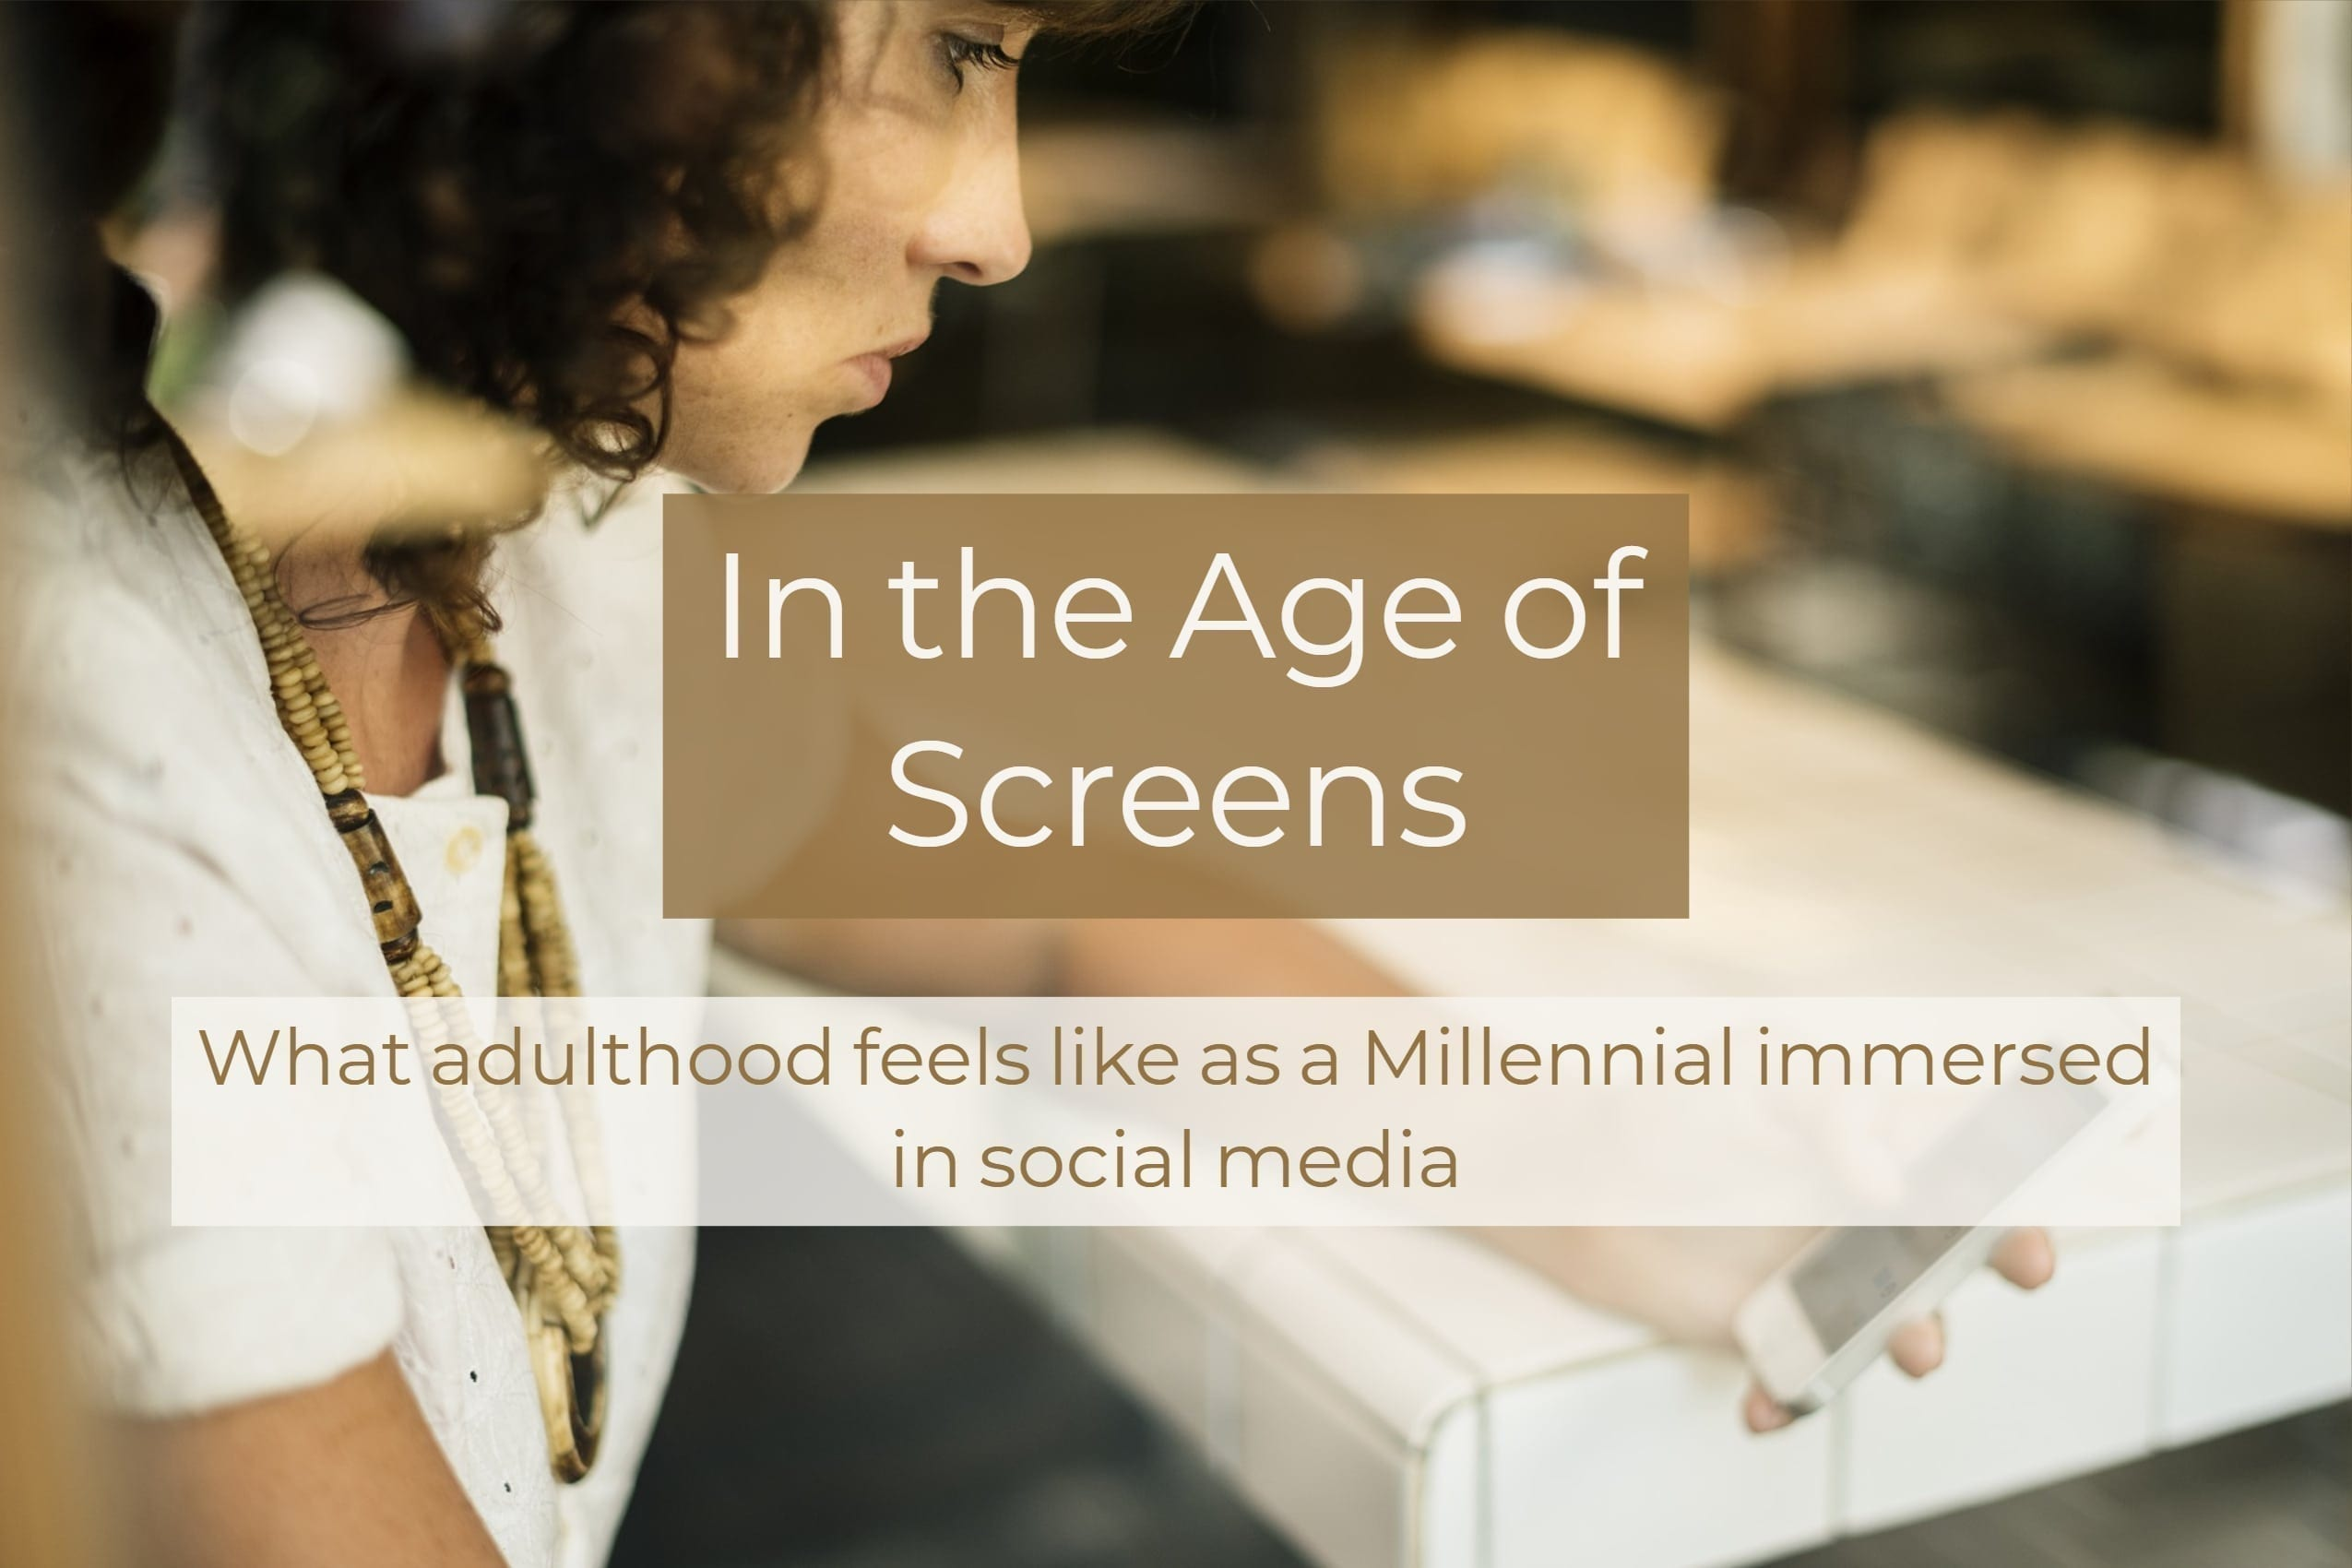 In the Age of Screens: What Adulthood Feels Like as a Millennial Immersed in Social Media